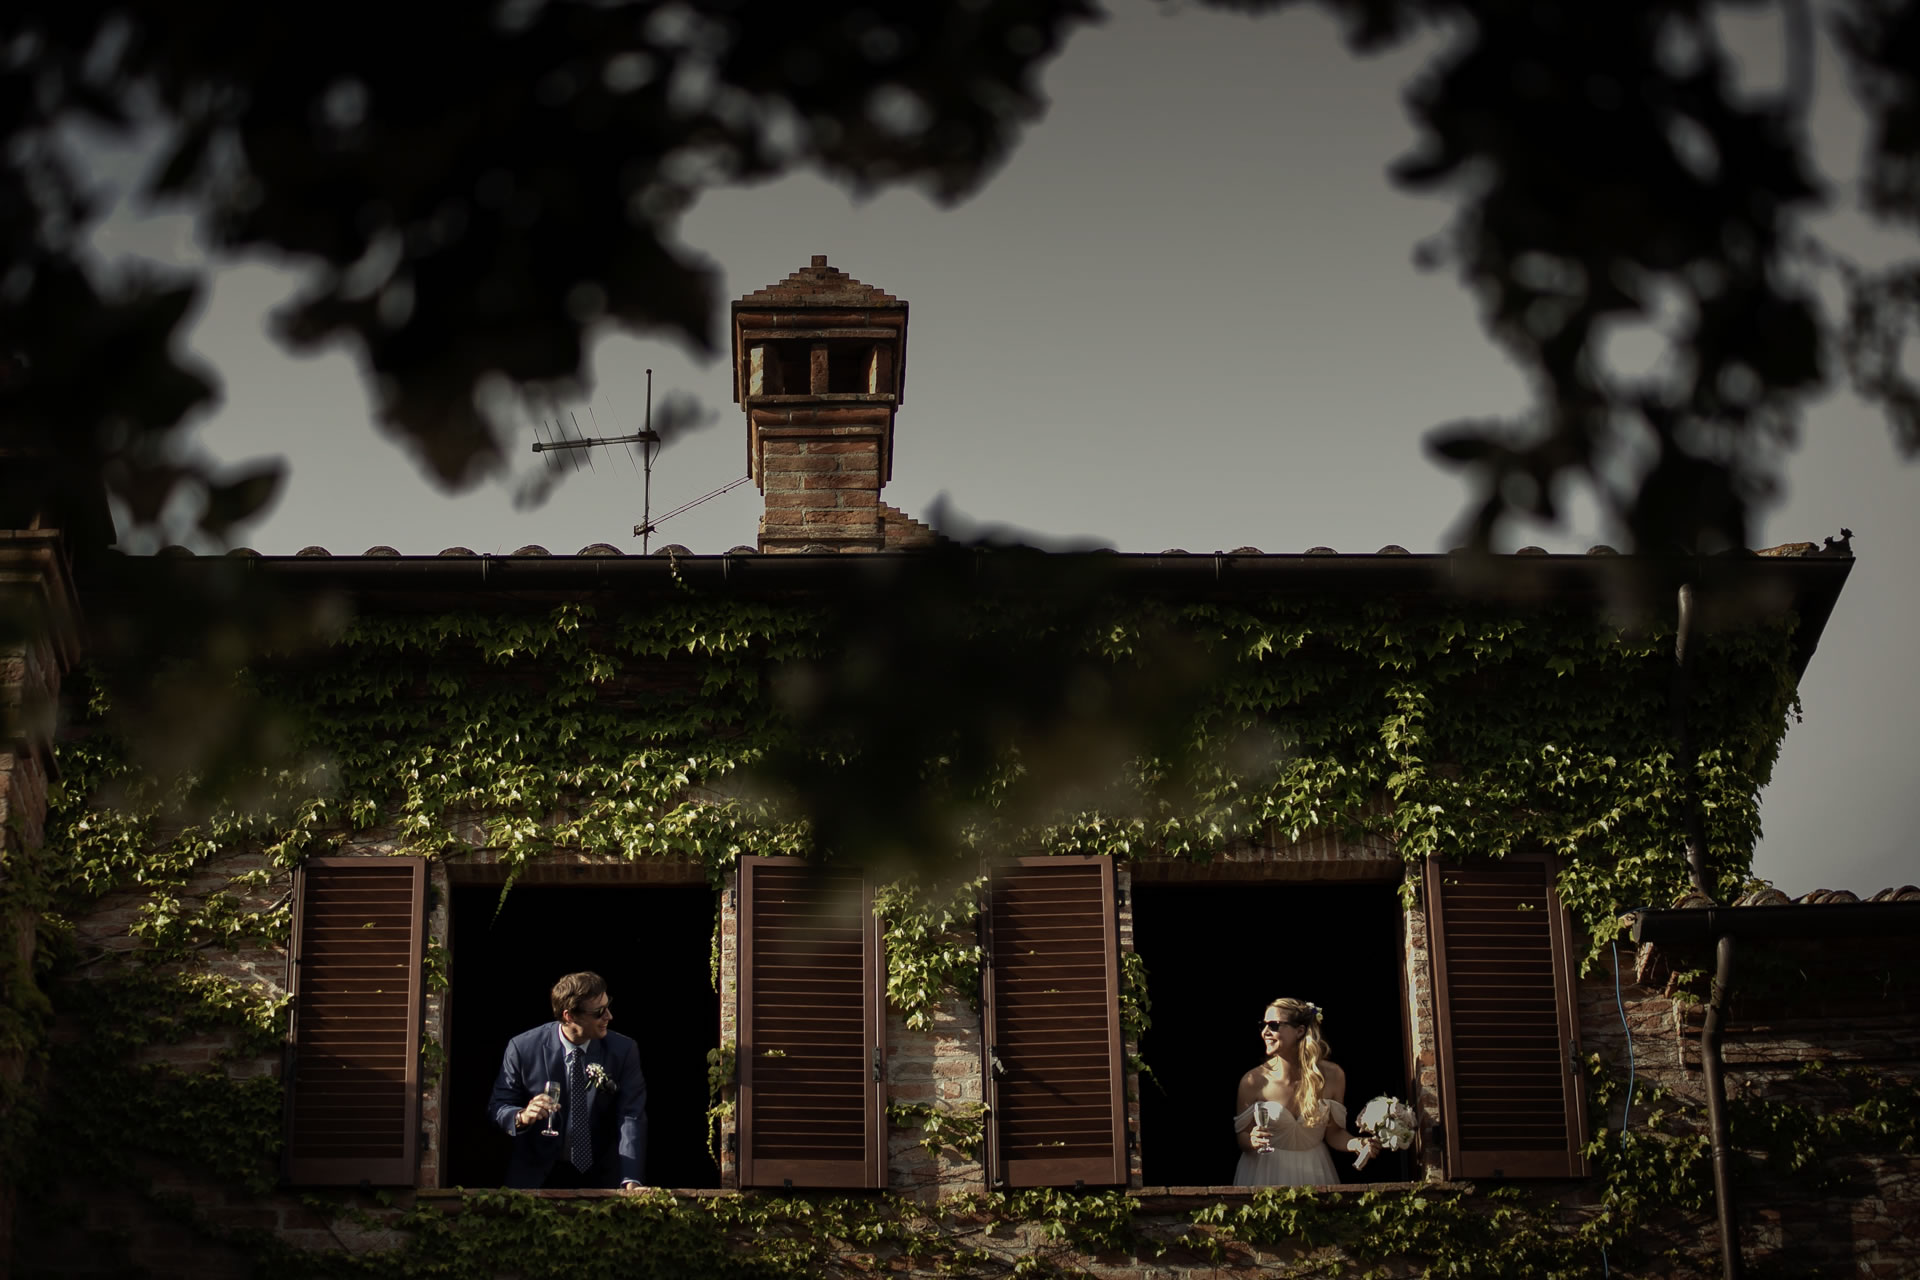 Windows - 20 :: Wedding in Perugia countryside. Jean and Toby :: Luxury wedding photography - 19 :: Windows - 20